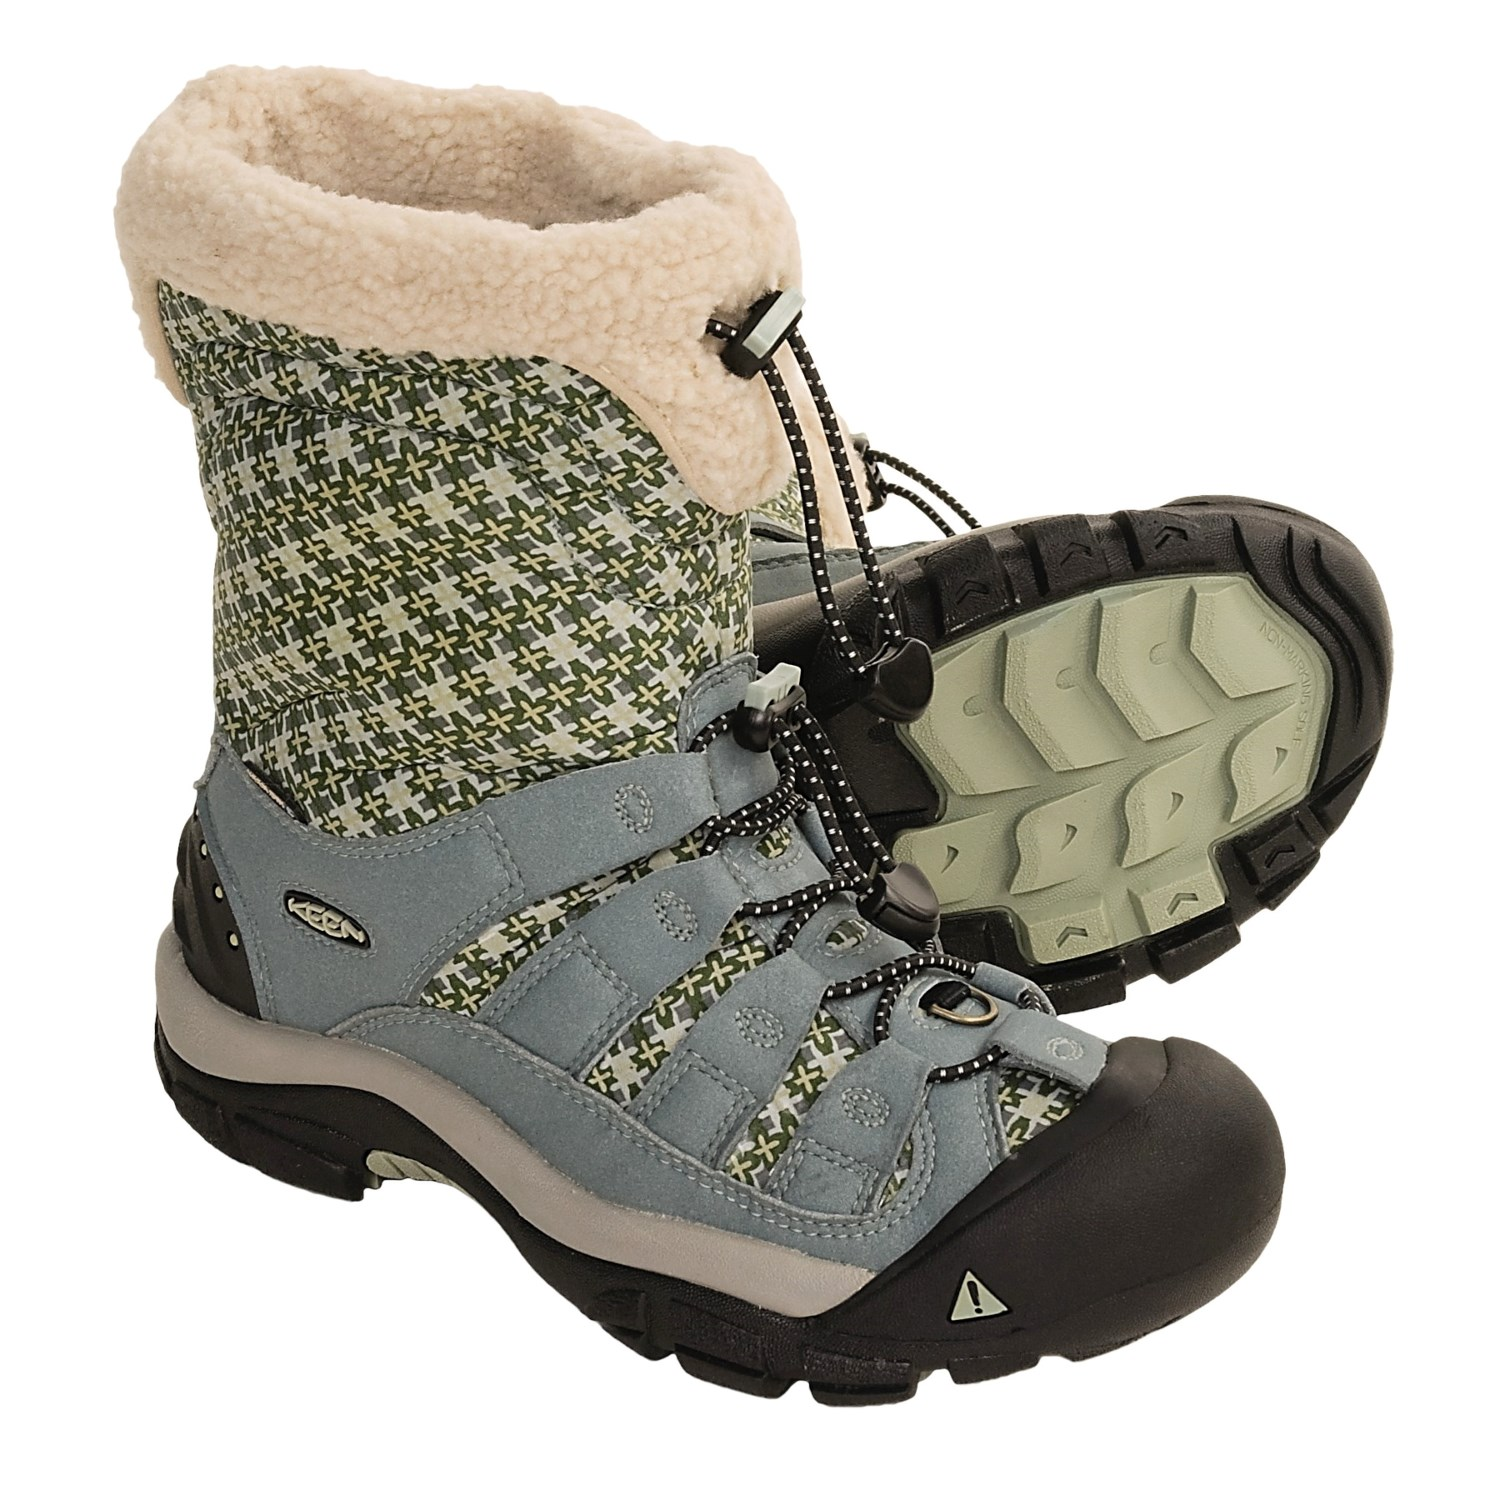 Keen Winterport II Winter Boots (For Women) 2756X - Save 46%